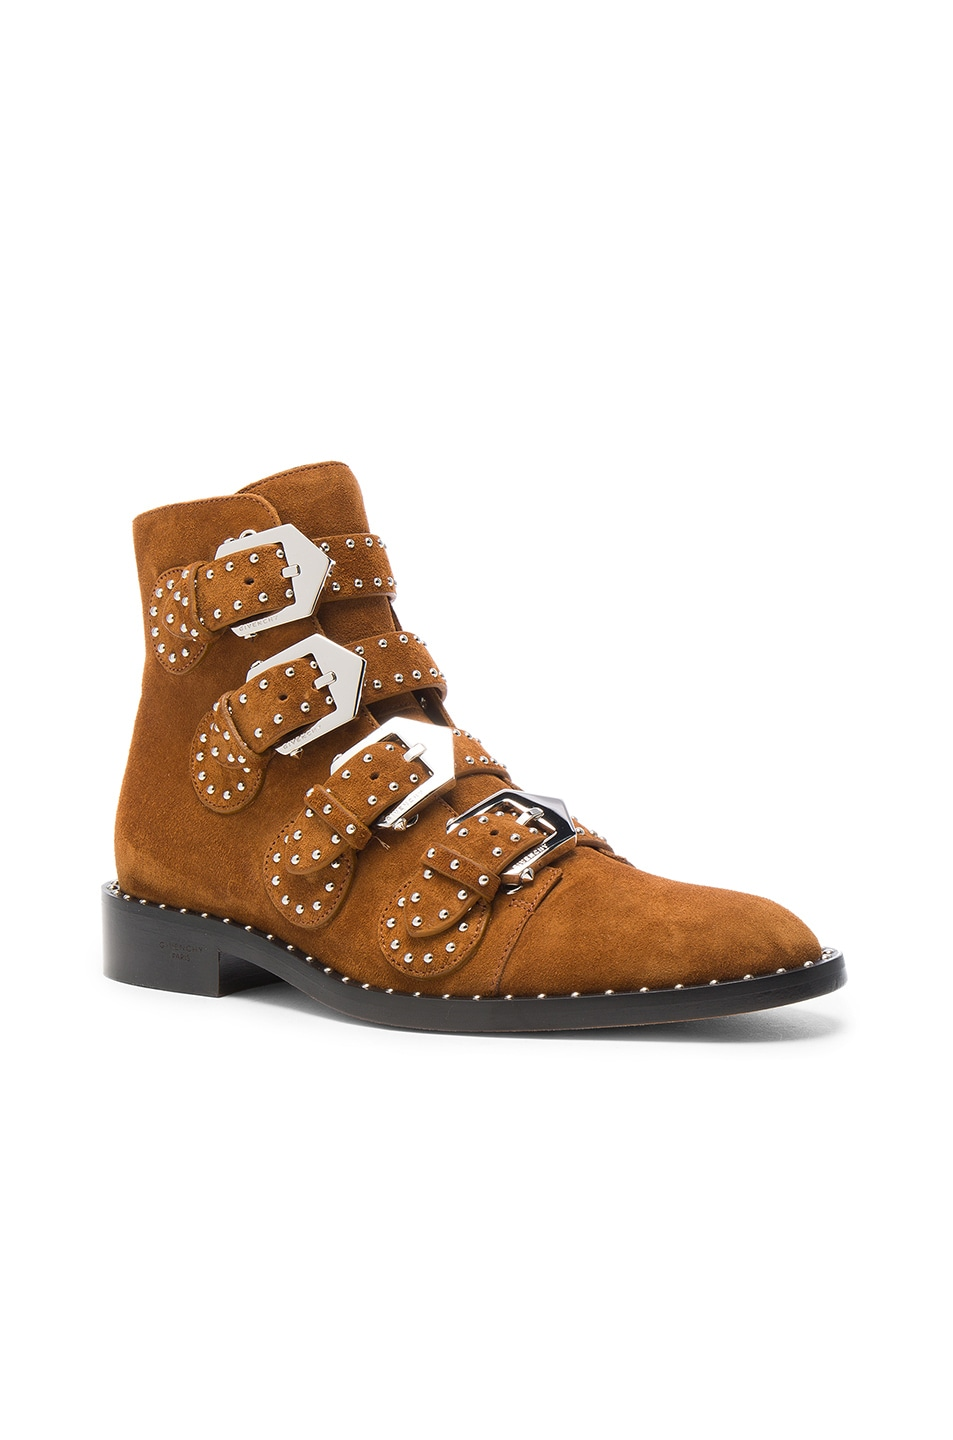 Image 2 of Givenchy Elegant Studded Suede Ankle Boots in Caramel